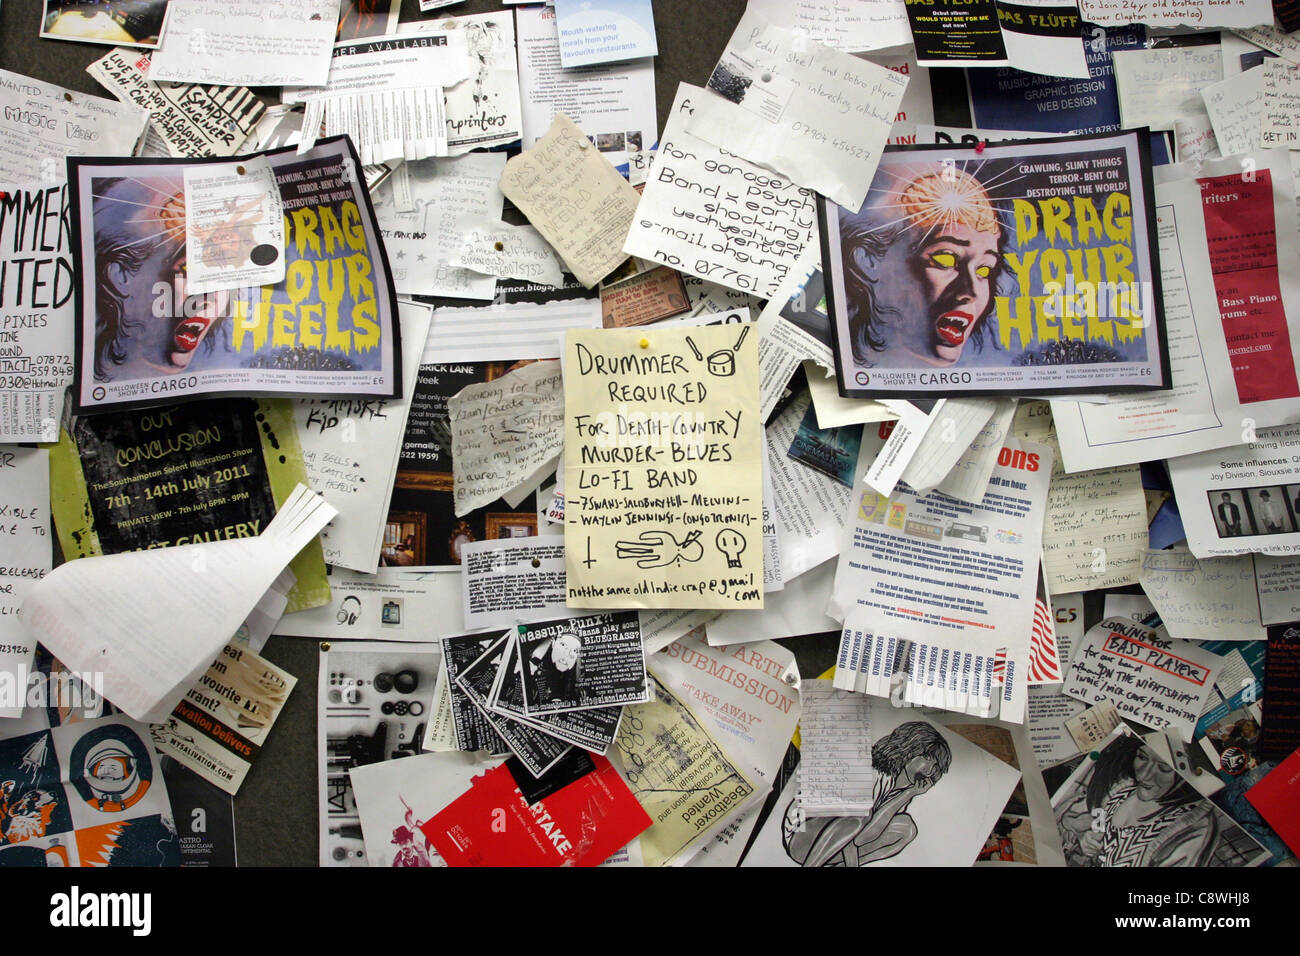 Adverts on a Music Shop Notice Board - Stock Image